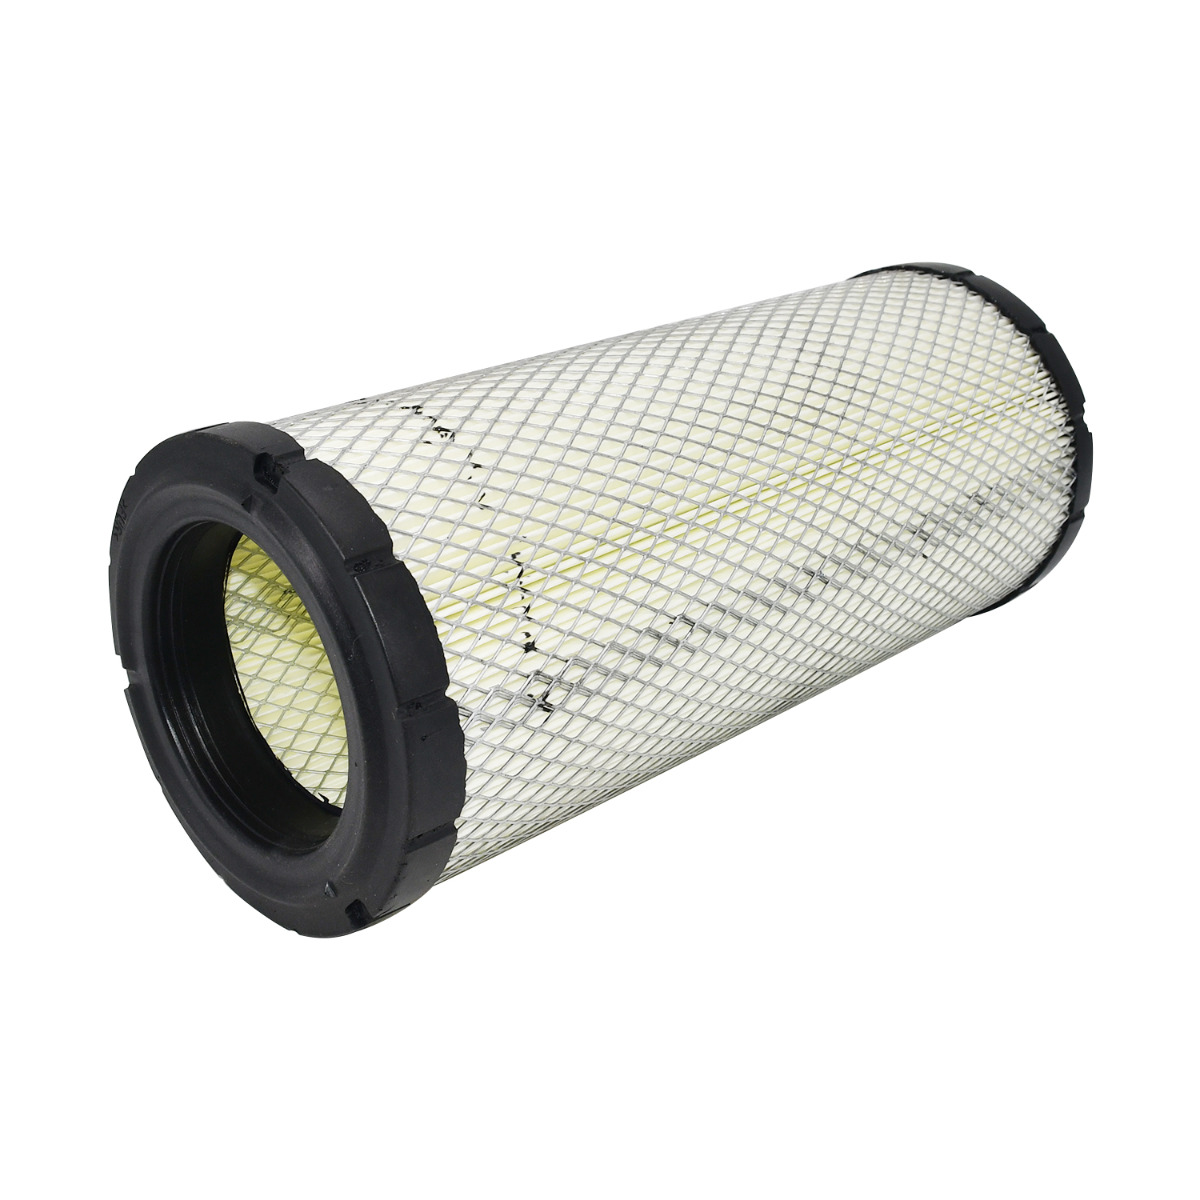 Air Filter P822768 Compatible with Kubota Tractor M4700 M4700DT M4800SU M4900 M5400DTN M5700 MX5000 MX5000DT MX5000F MX5100DT MX5100F L48TL L48TLB L5030